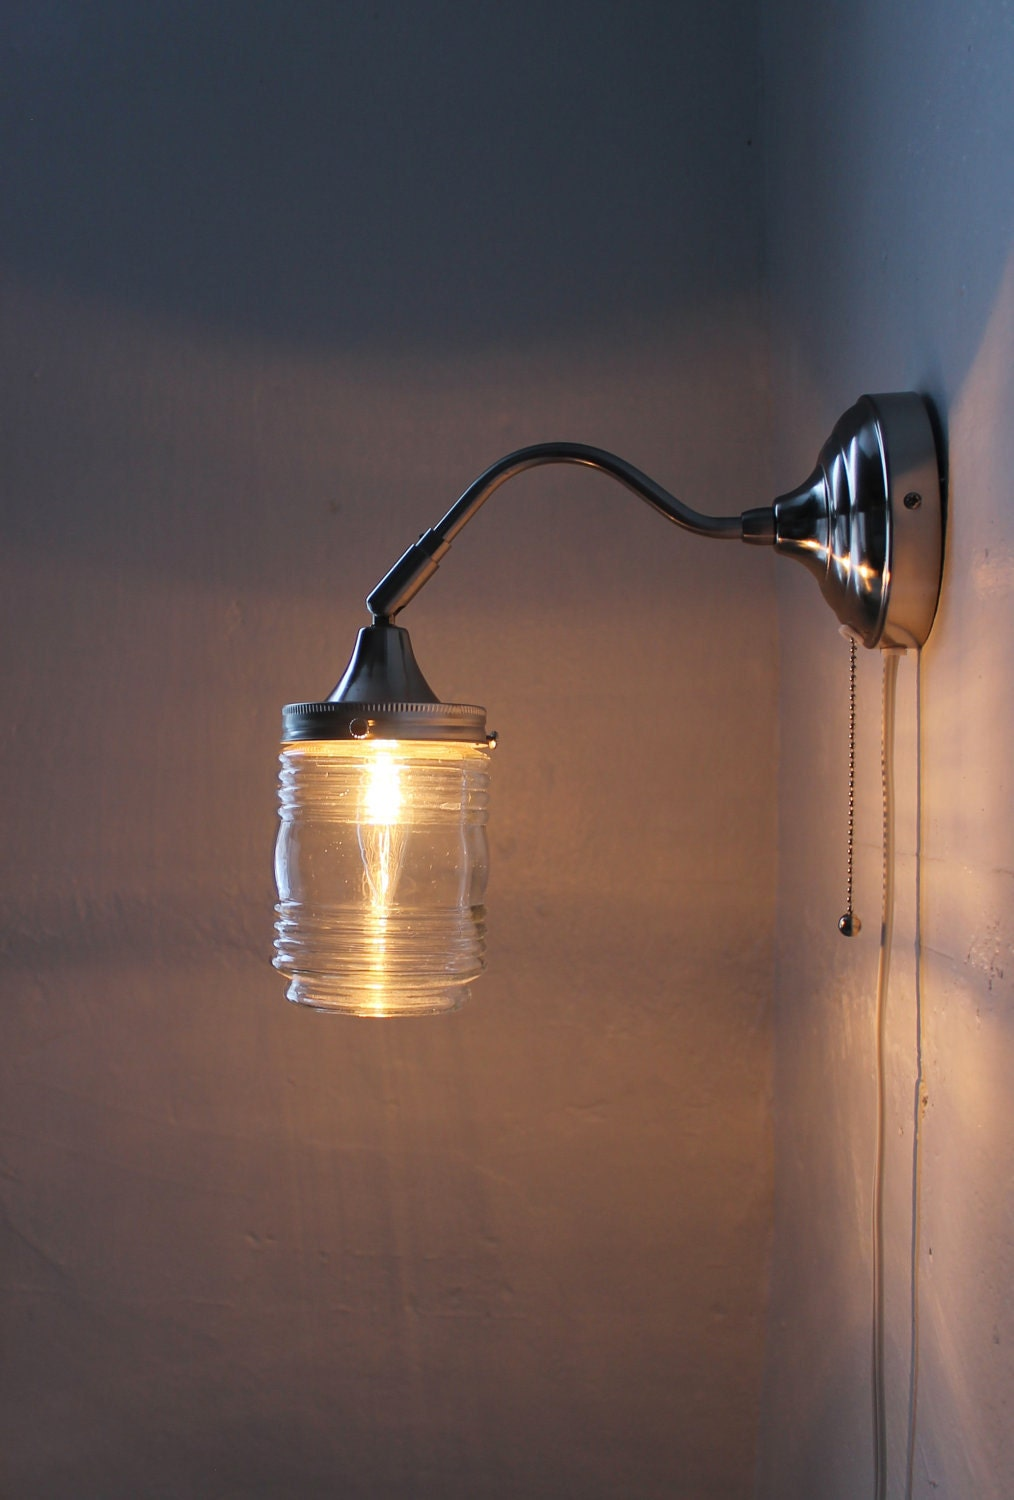 Wall Sconces Etsy : City Lights Gooseneck Wall Sconce Lamp Industrial Stainless